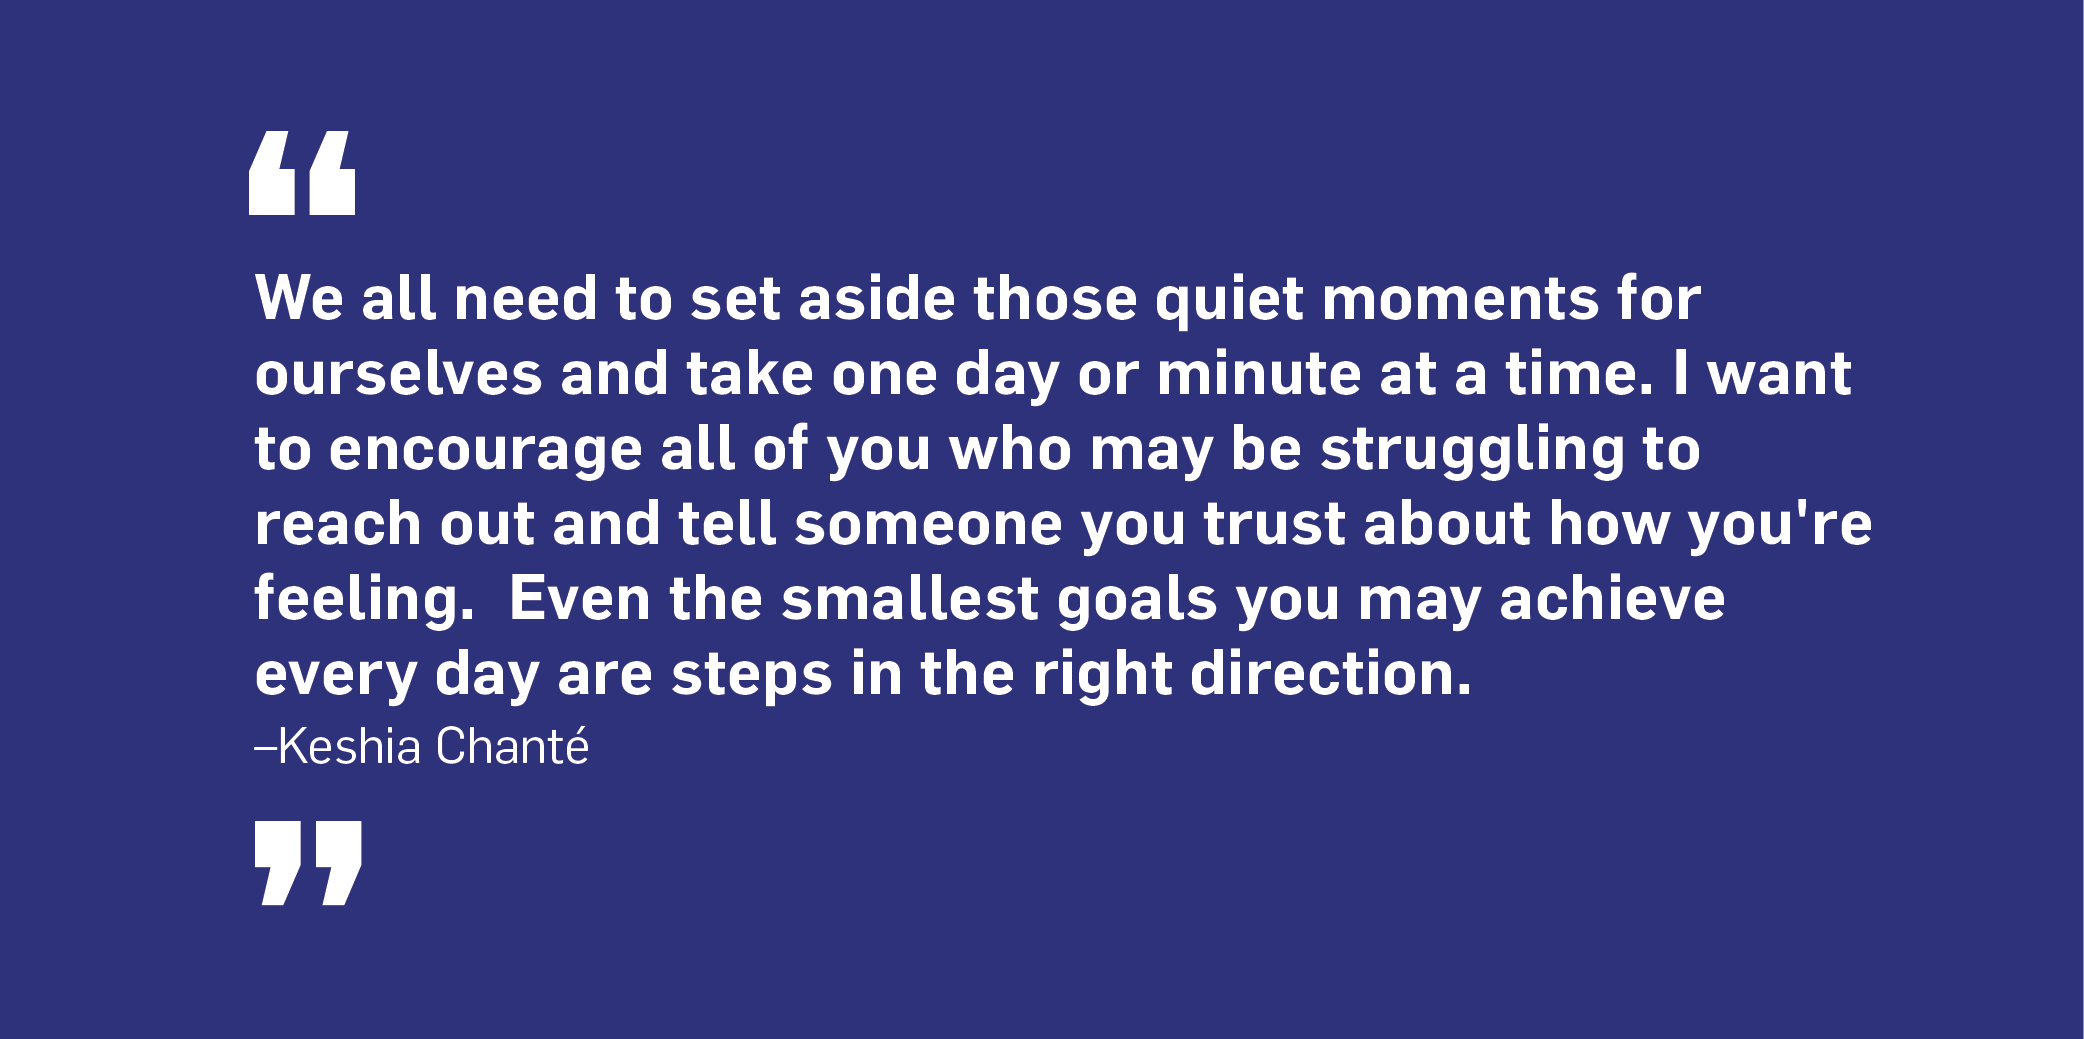 Quote. We all need to set aside those quiet moments for ourselves and take one day or minute at a time. I want to encourage all of you who may be struggling to reach out and tell someone you trust about how you're feeling. Even the smallest goals you achieve every day are steps in the right direction. Unquote. Keshia Chanté